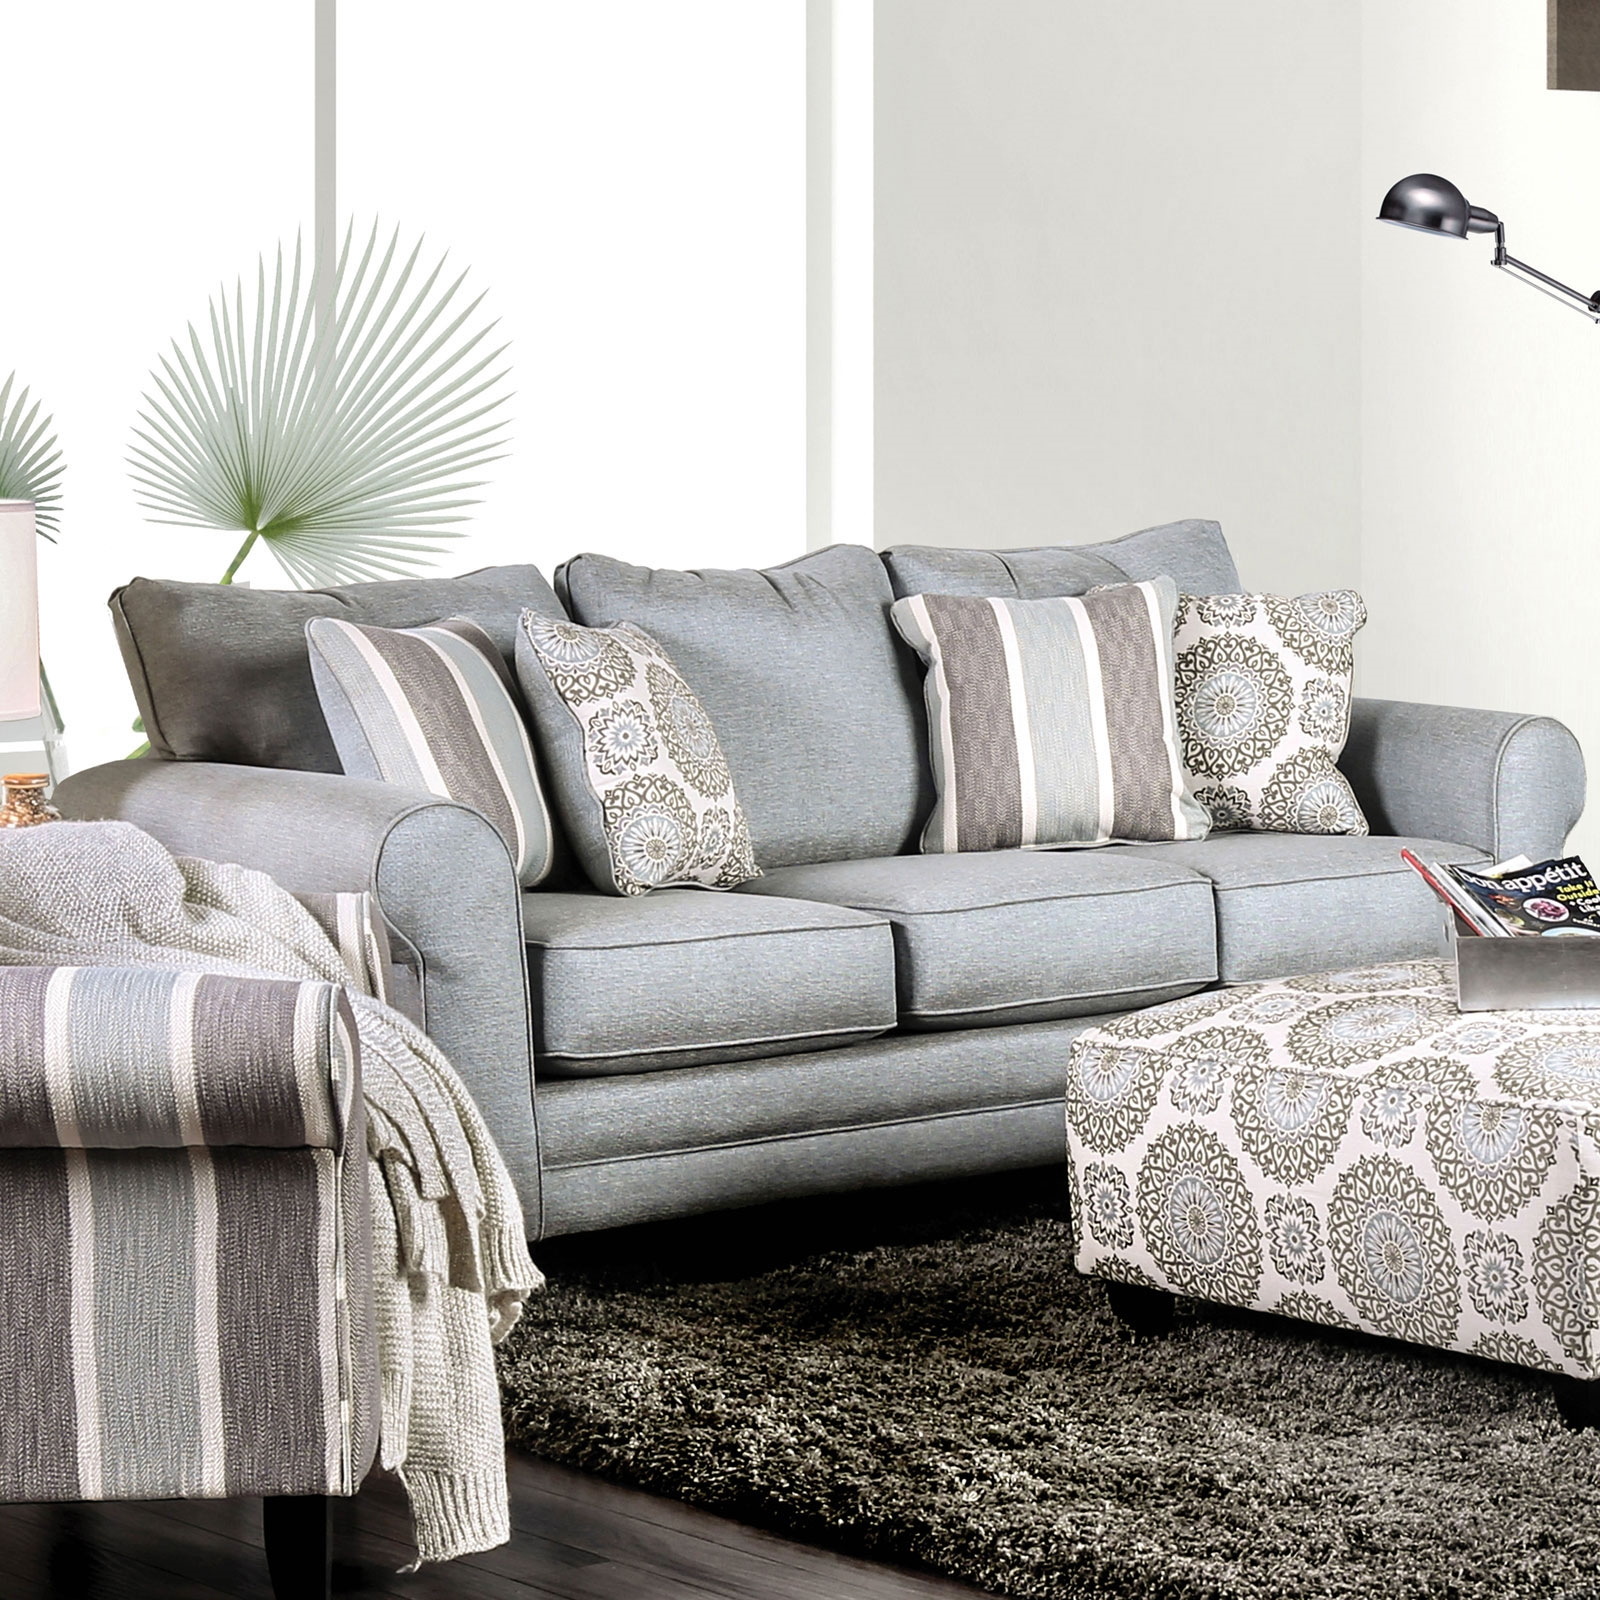 Stunning Transitional Style Sofa In